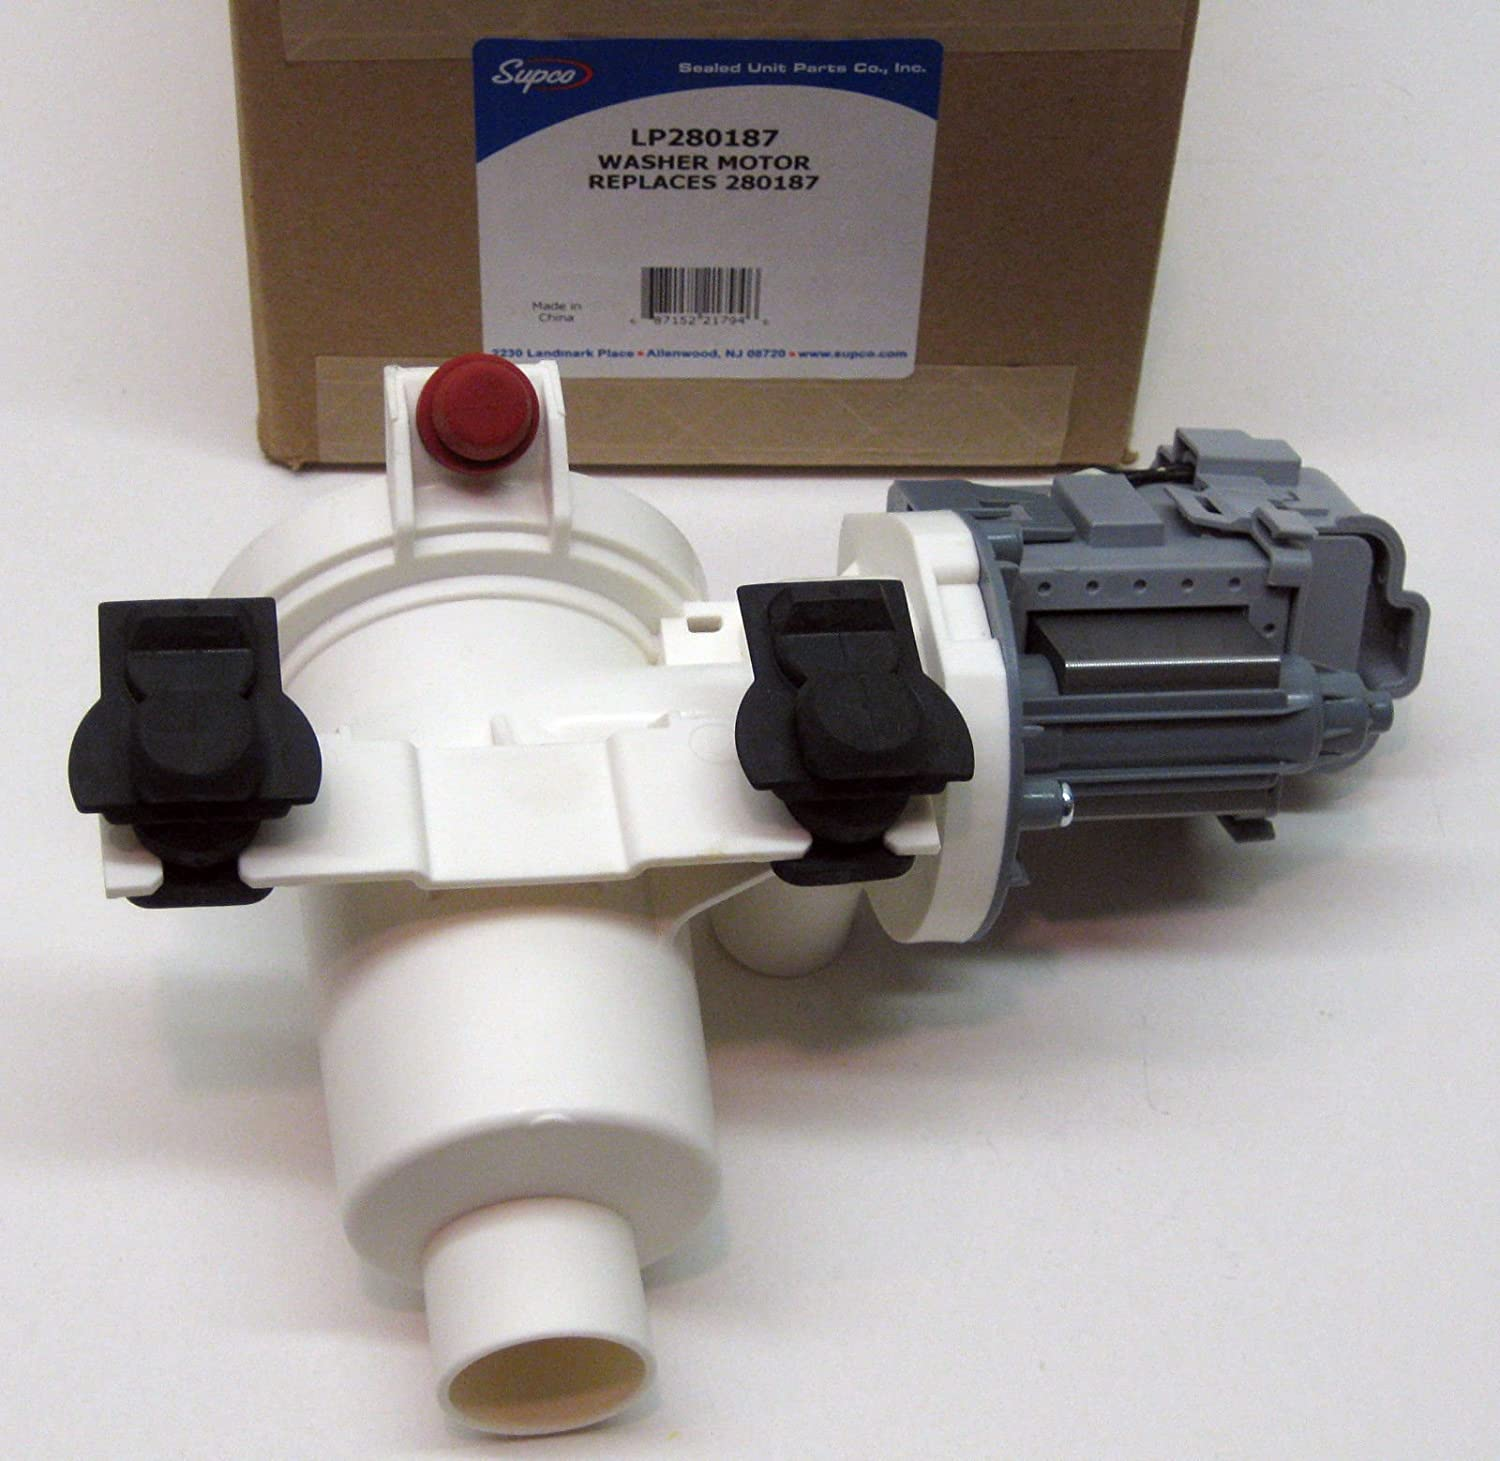 New Washers & Dryers Parts LP-280187 Washer Pump Motor for Whirlpool Kenmore Duet Washing AP3953640